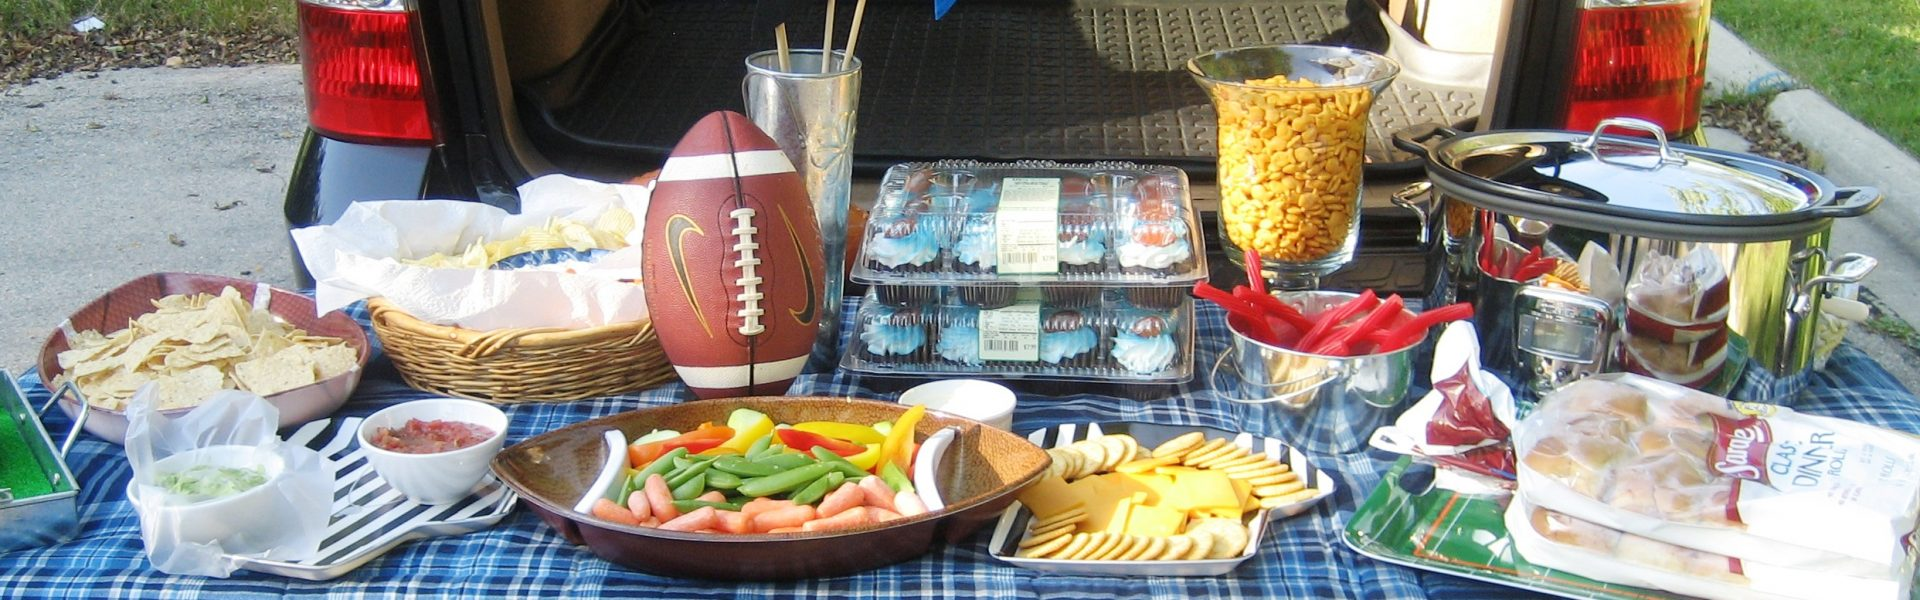 picture of tailgating items